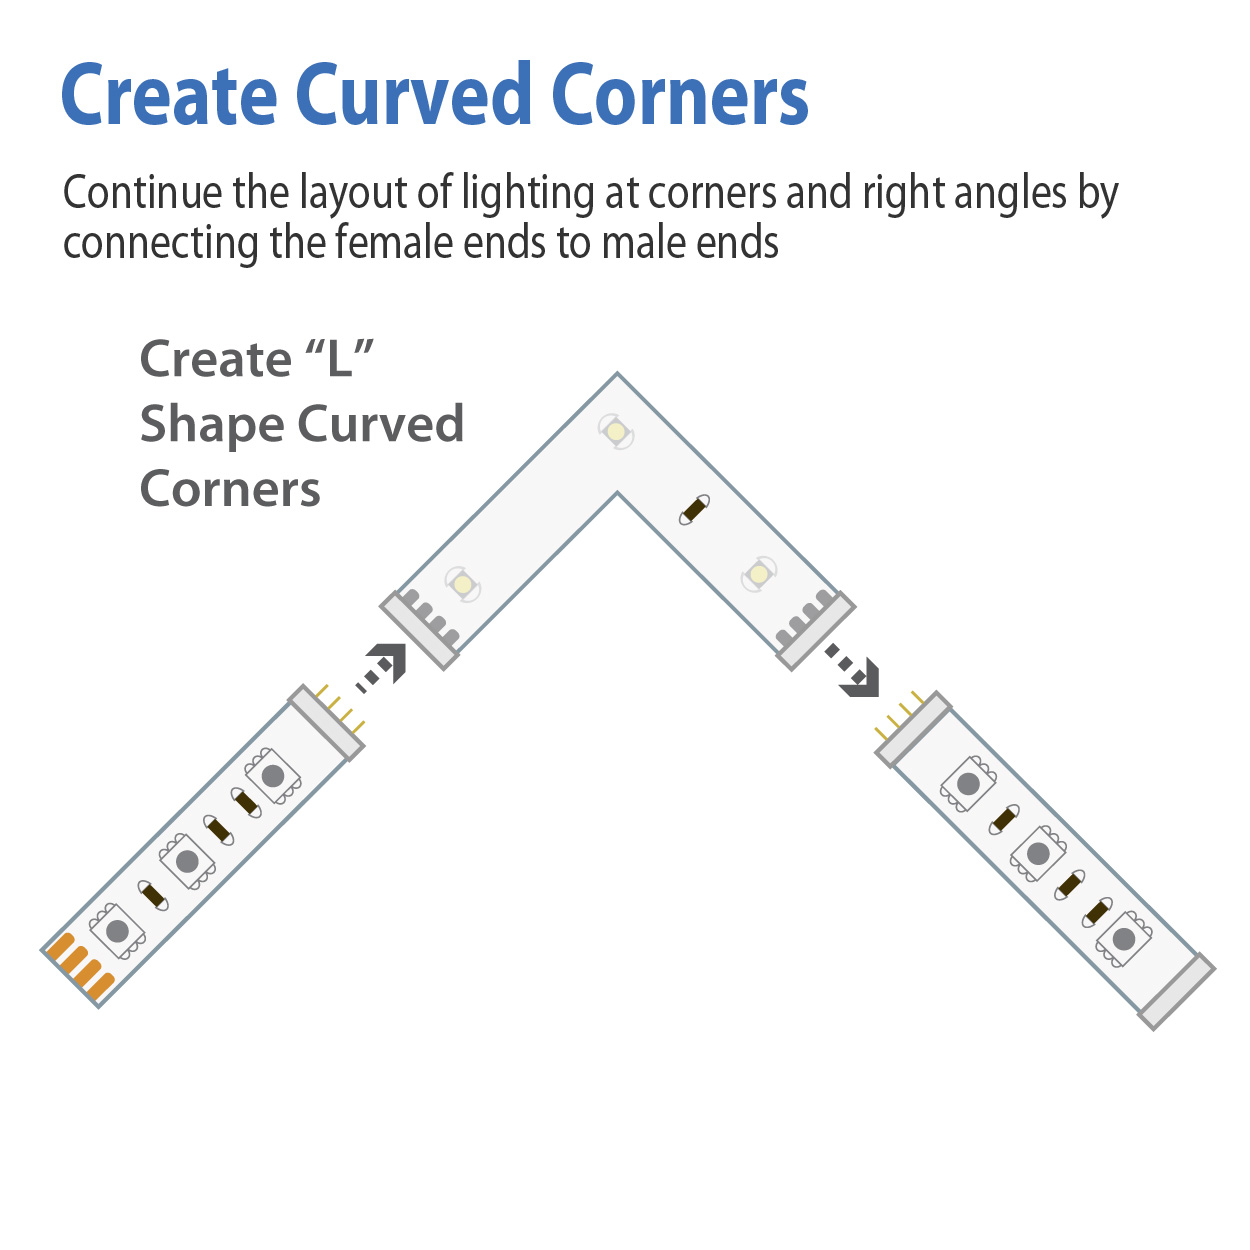 4 pin female to female corner connector l type with 3 led waterproof rgb 5v usb pi manufacturing [ 1250 x 1250 Pixel ]